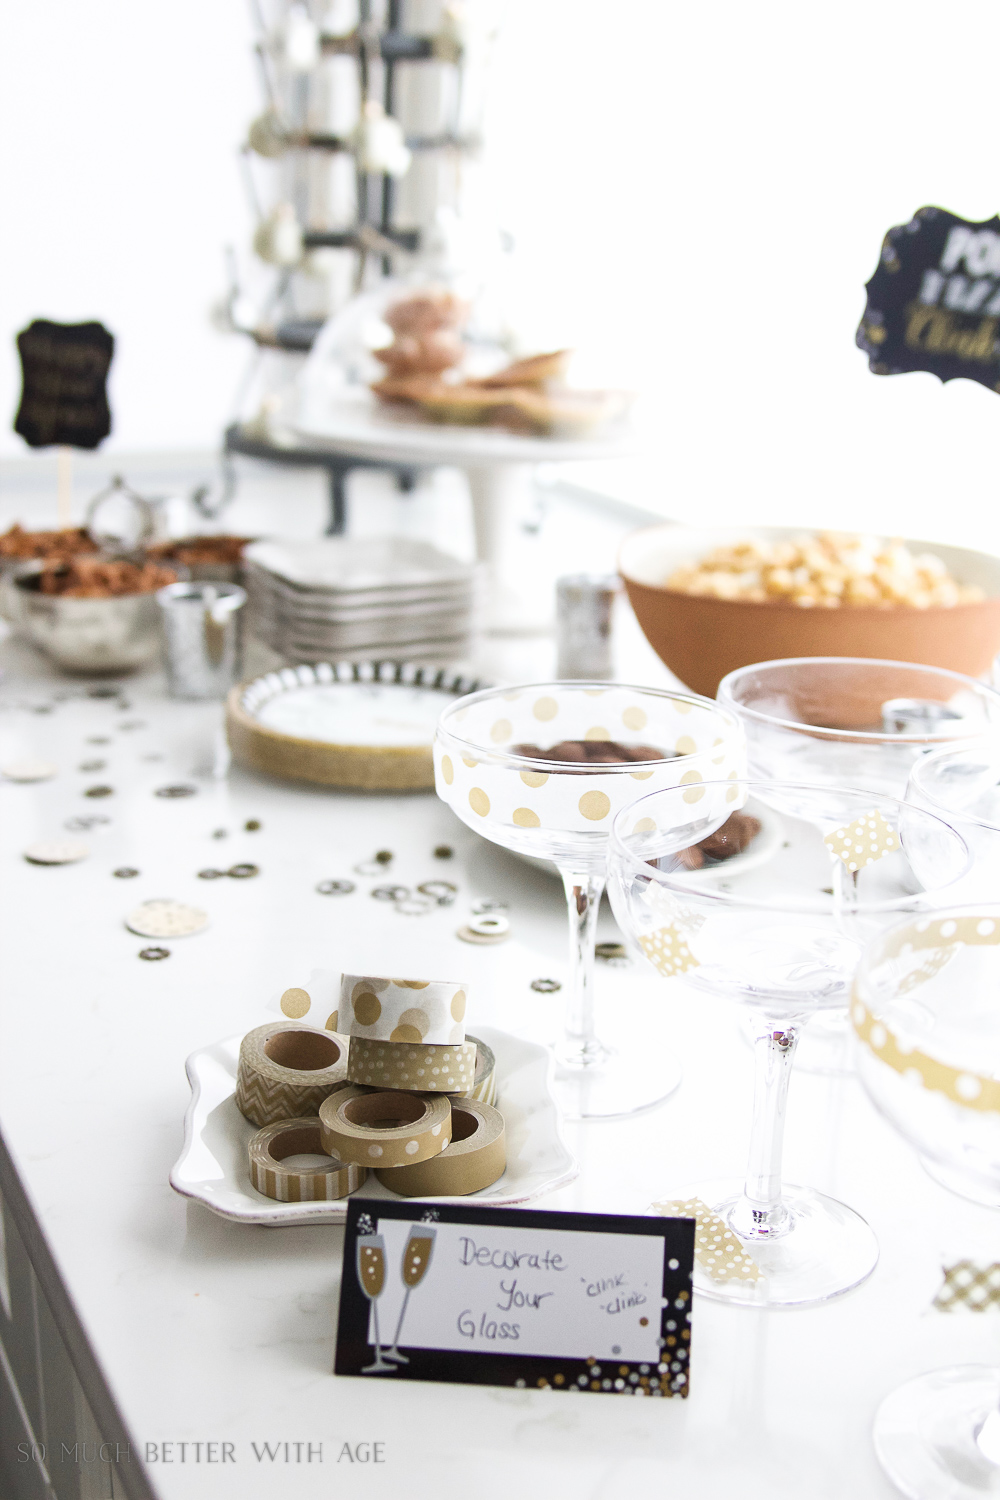 A New Year's Eve Party Bubbly Bar with Party Tips / Decorate your glass with washi tape - So Much Better With Age